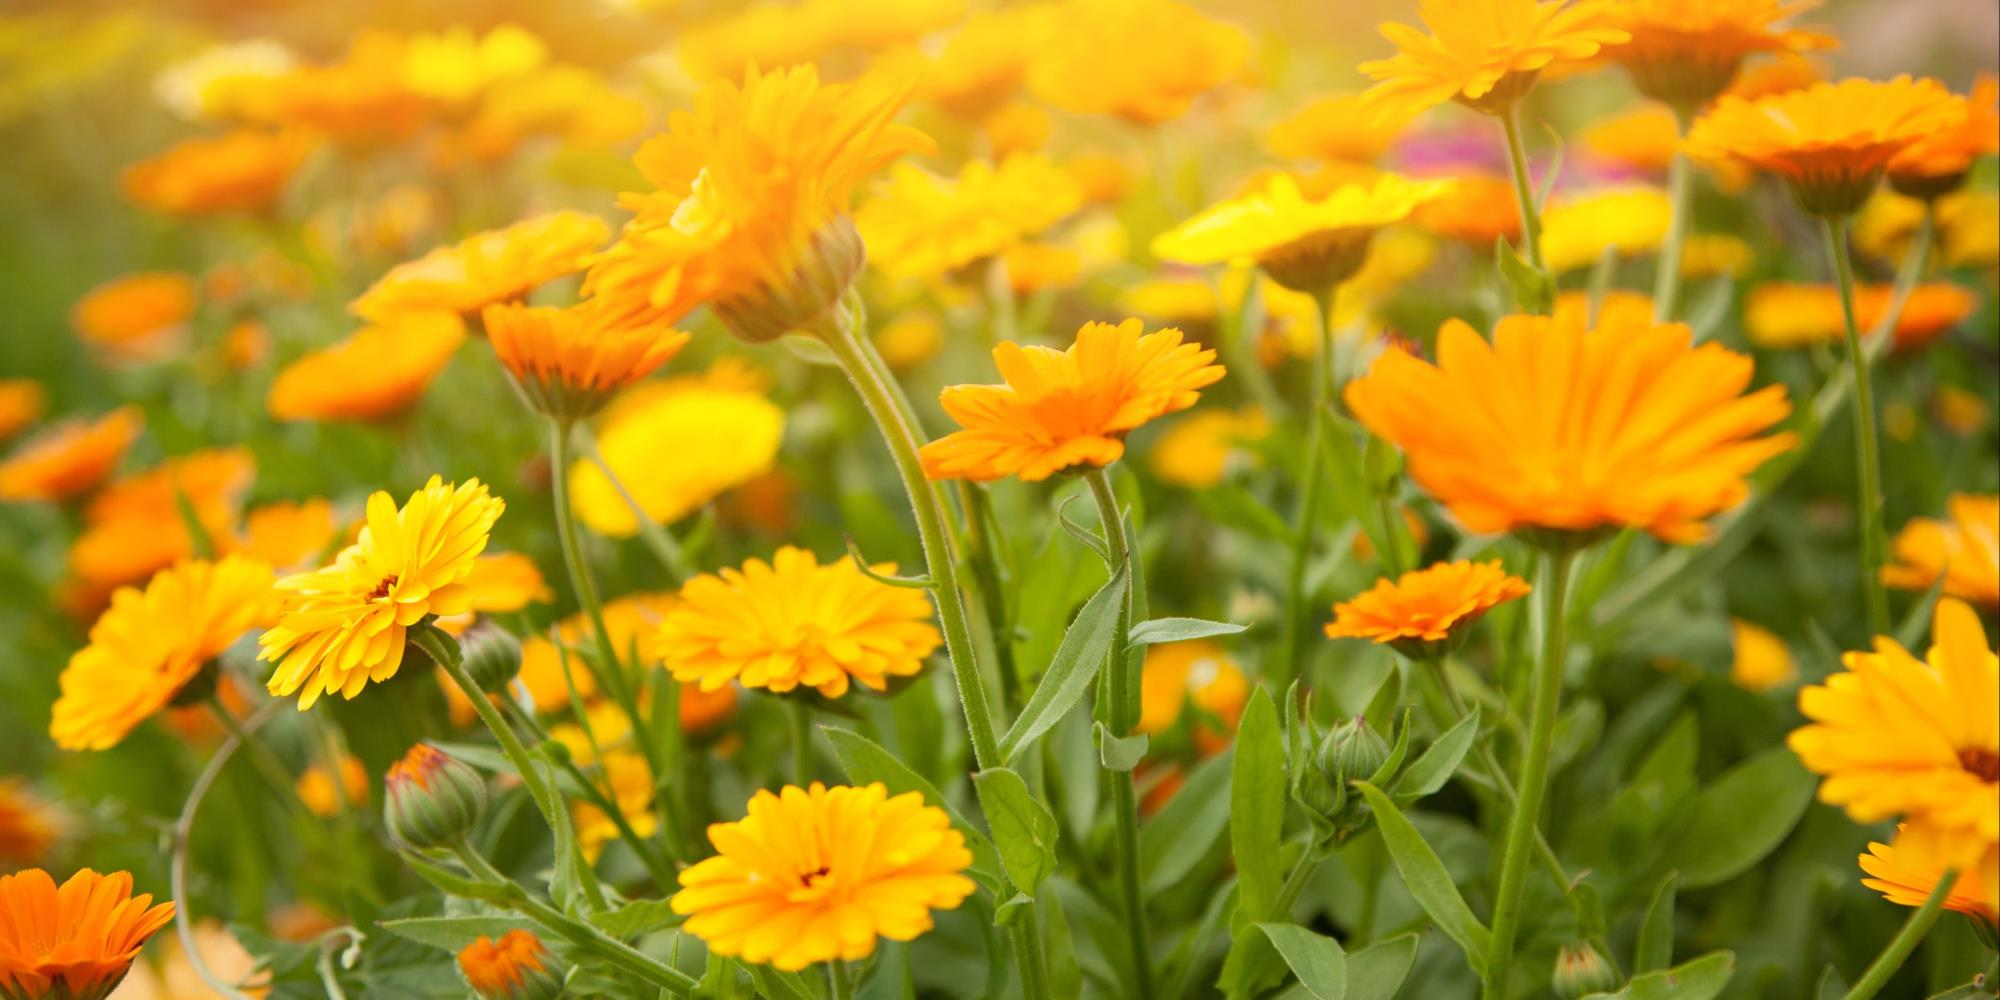 What are the benefits of Calendula flowers?